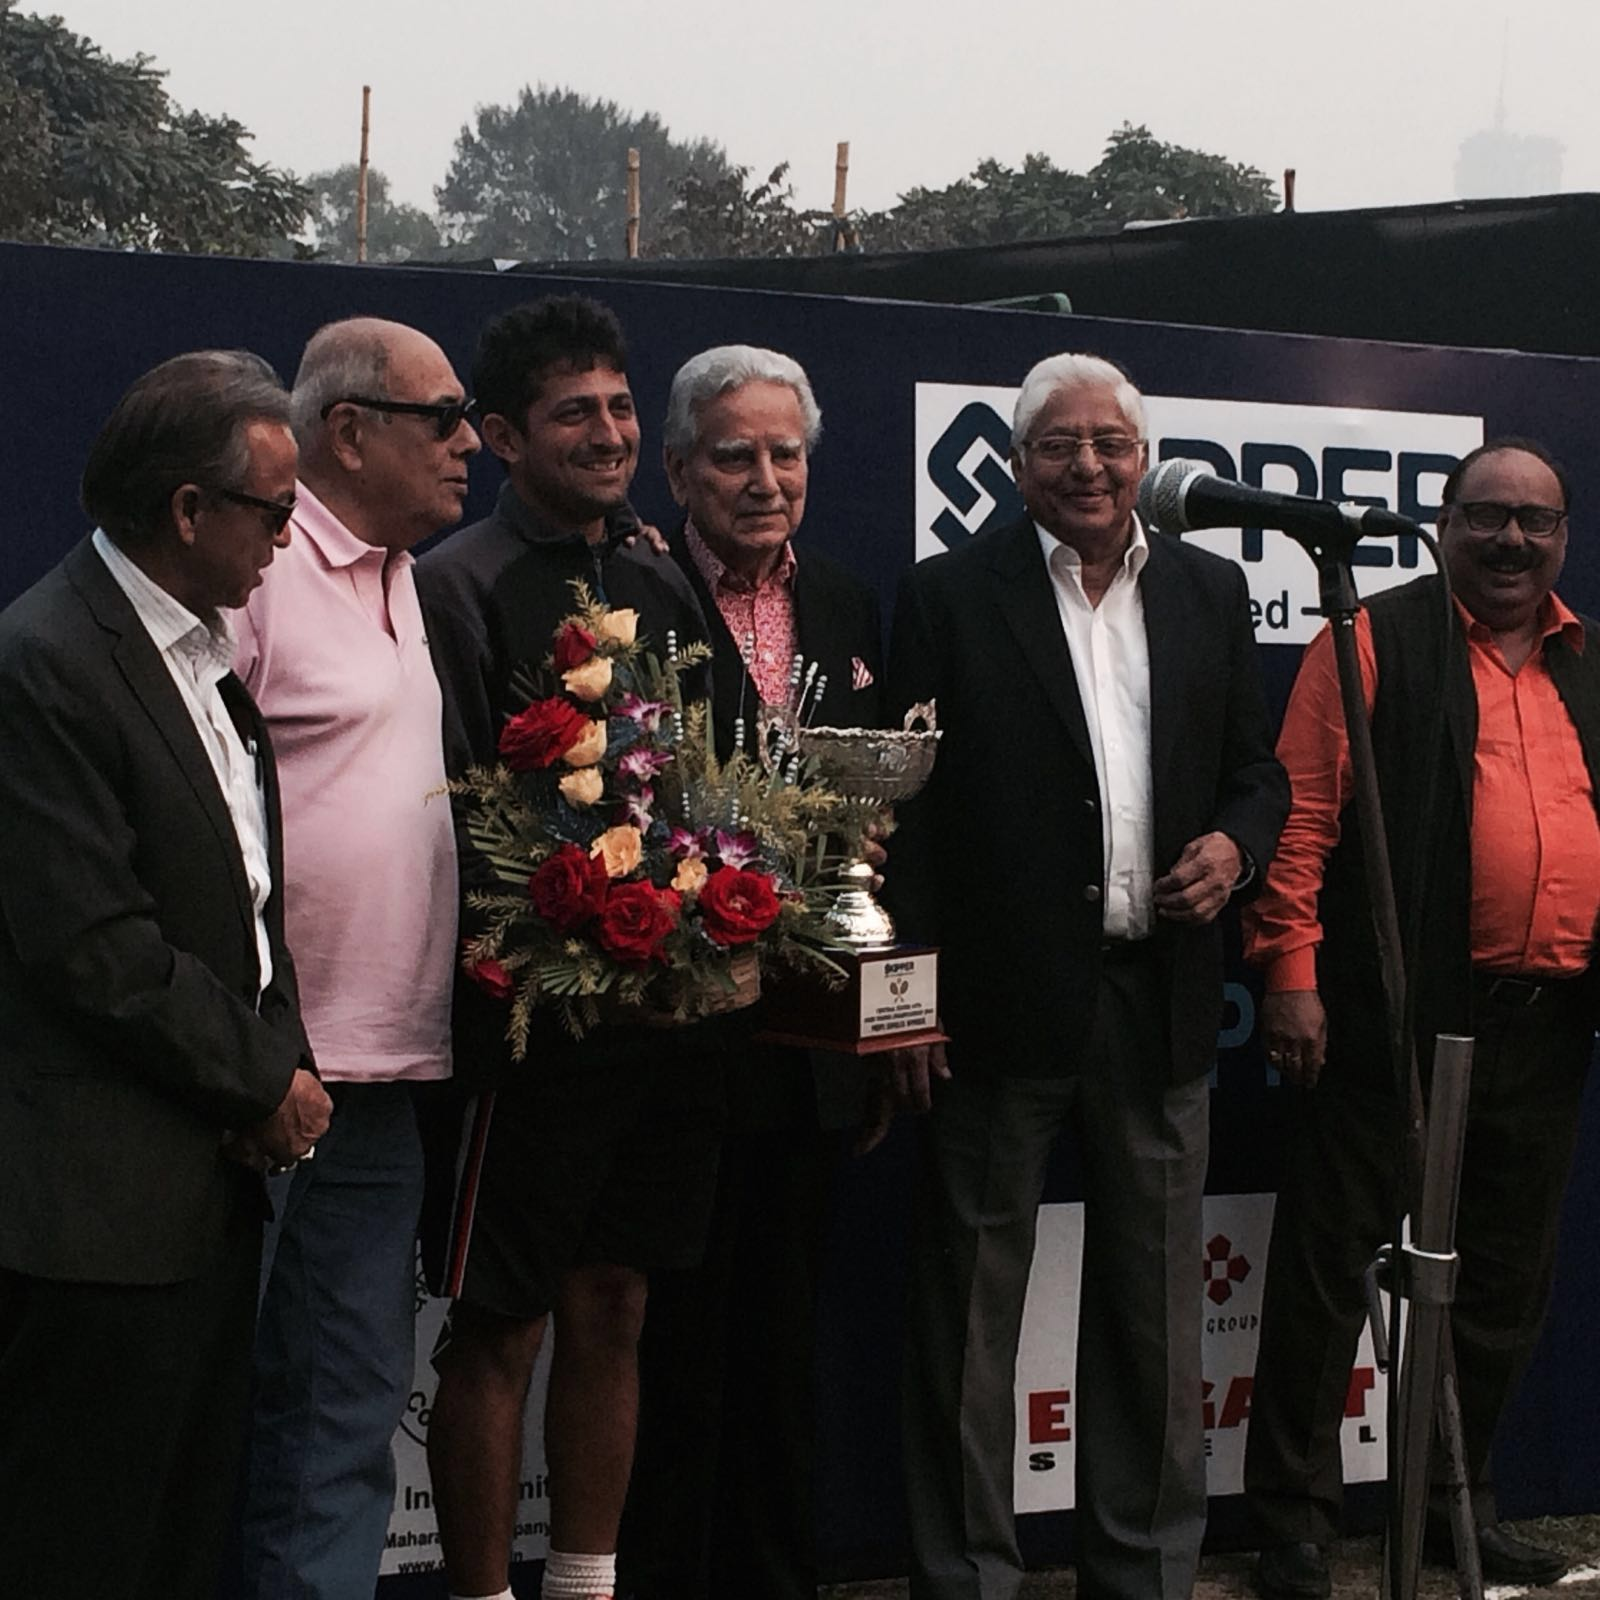 Central Excise All India Men's Tennis Tournament